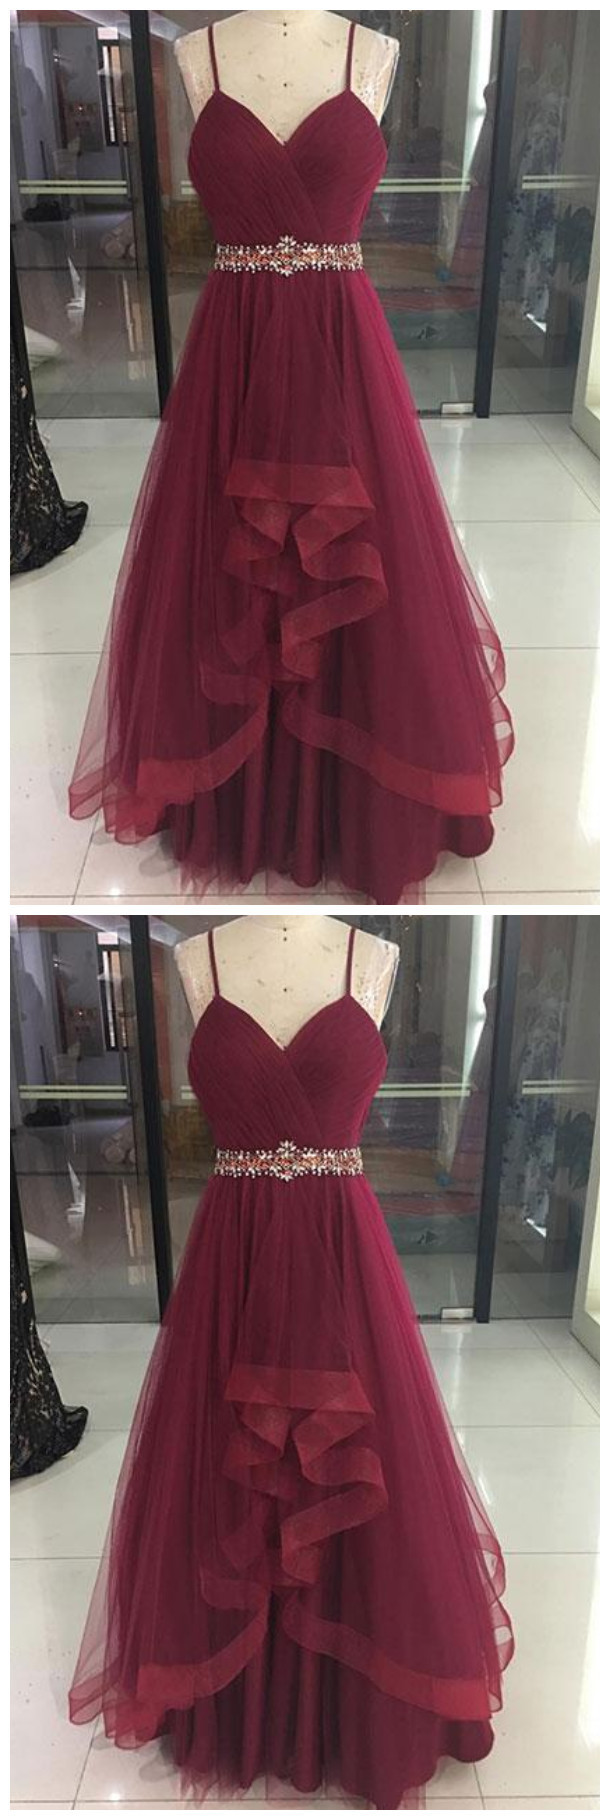 Copy of Sexy Burgundy V-Neck Tulle Prom Dress,Spaghetti Straps Burgundy Evening